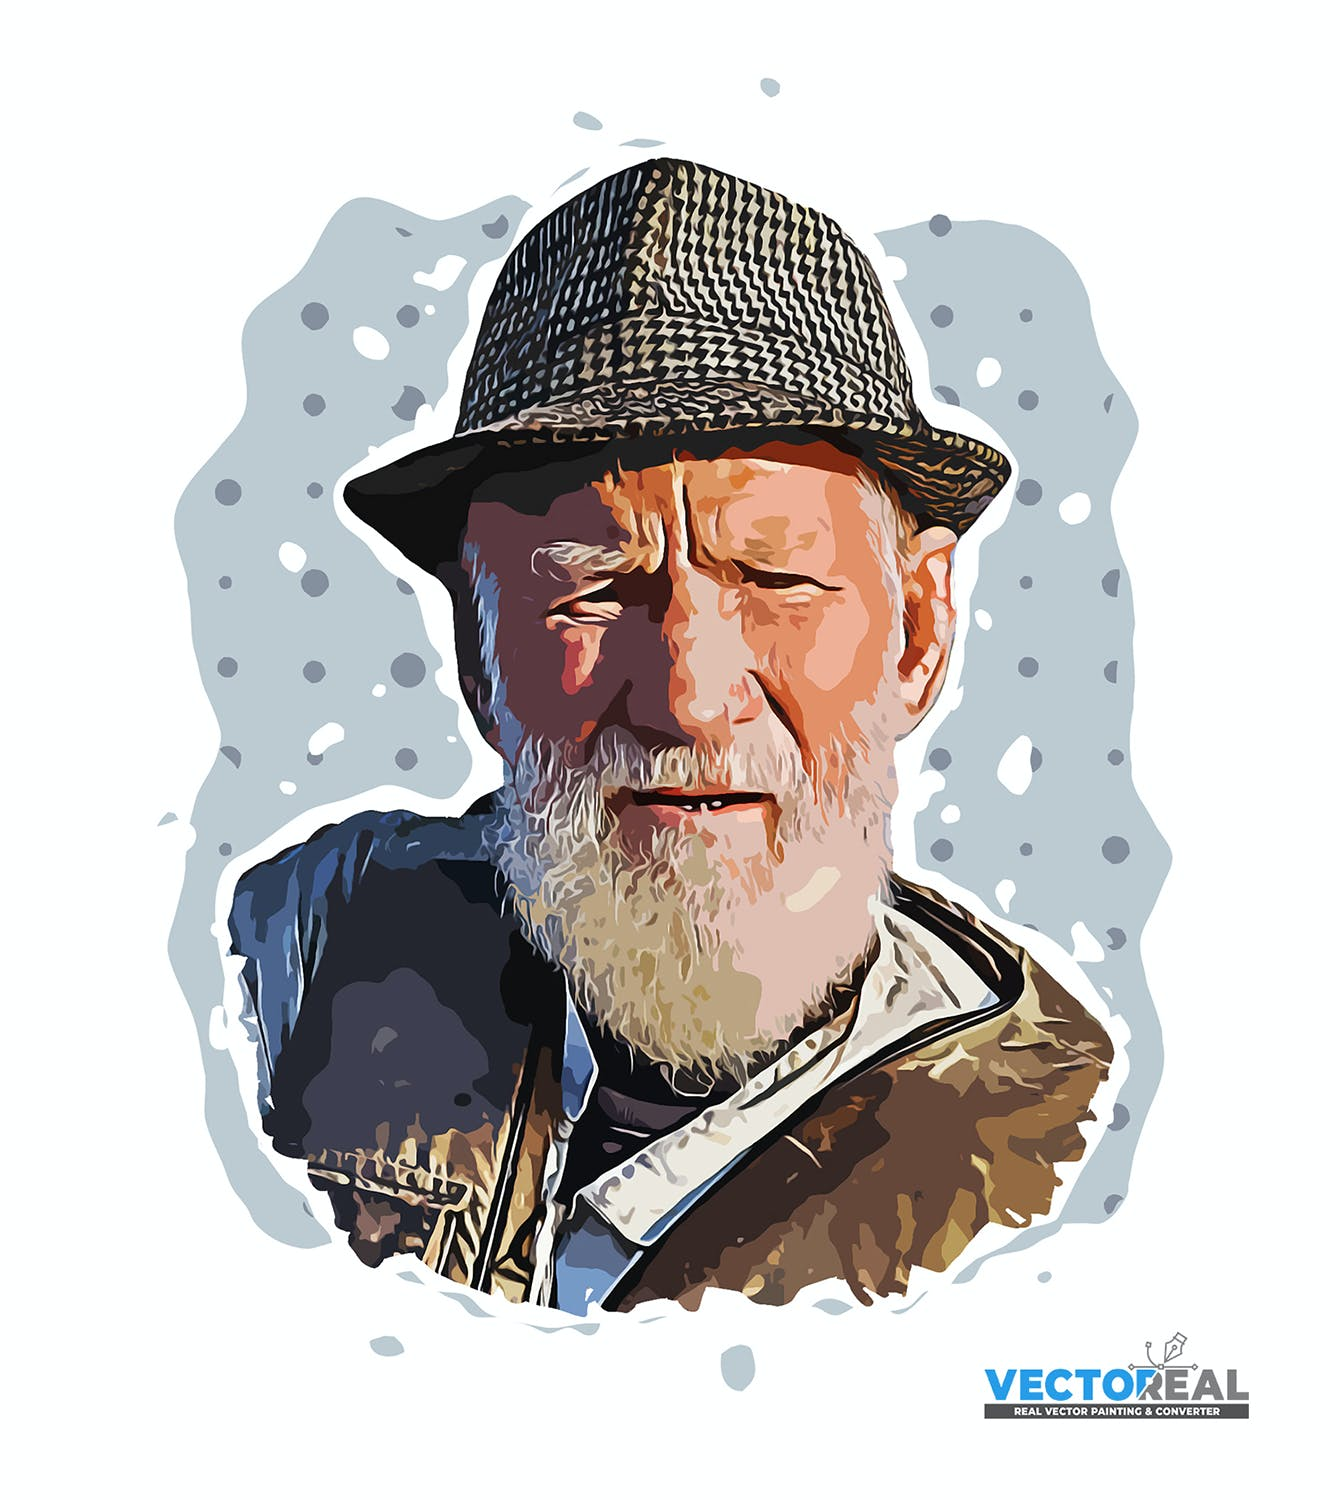 矢量手绘转换PS插件 Real Vector Painting & Converter PS Plugin设计素材模板